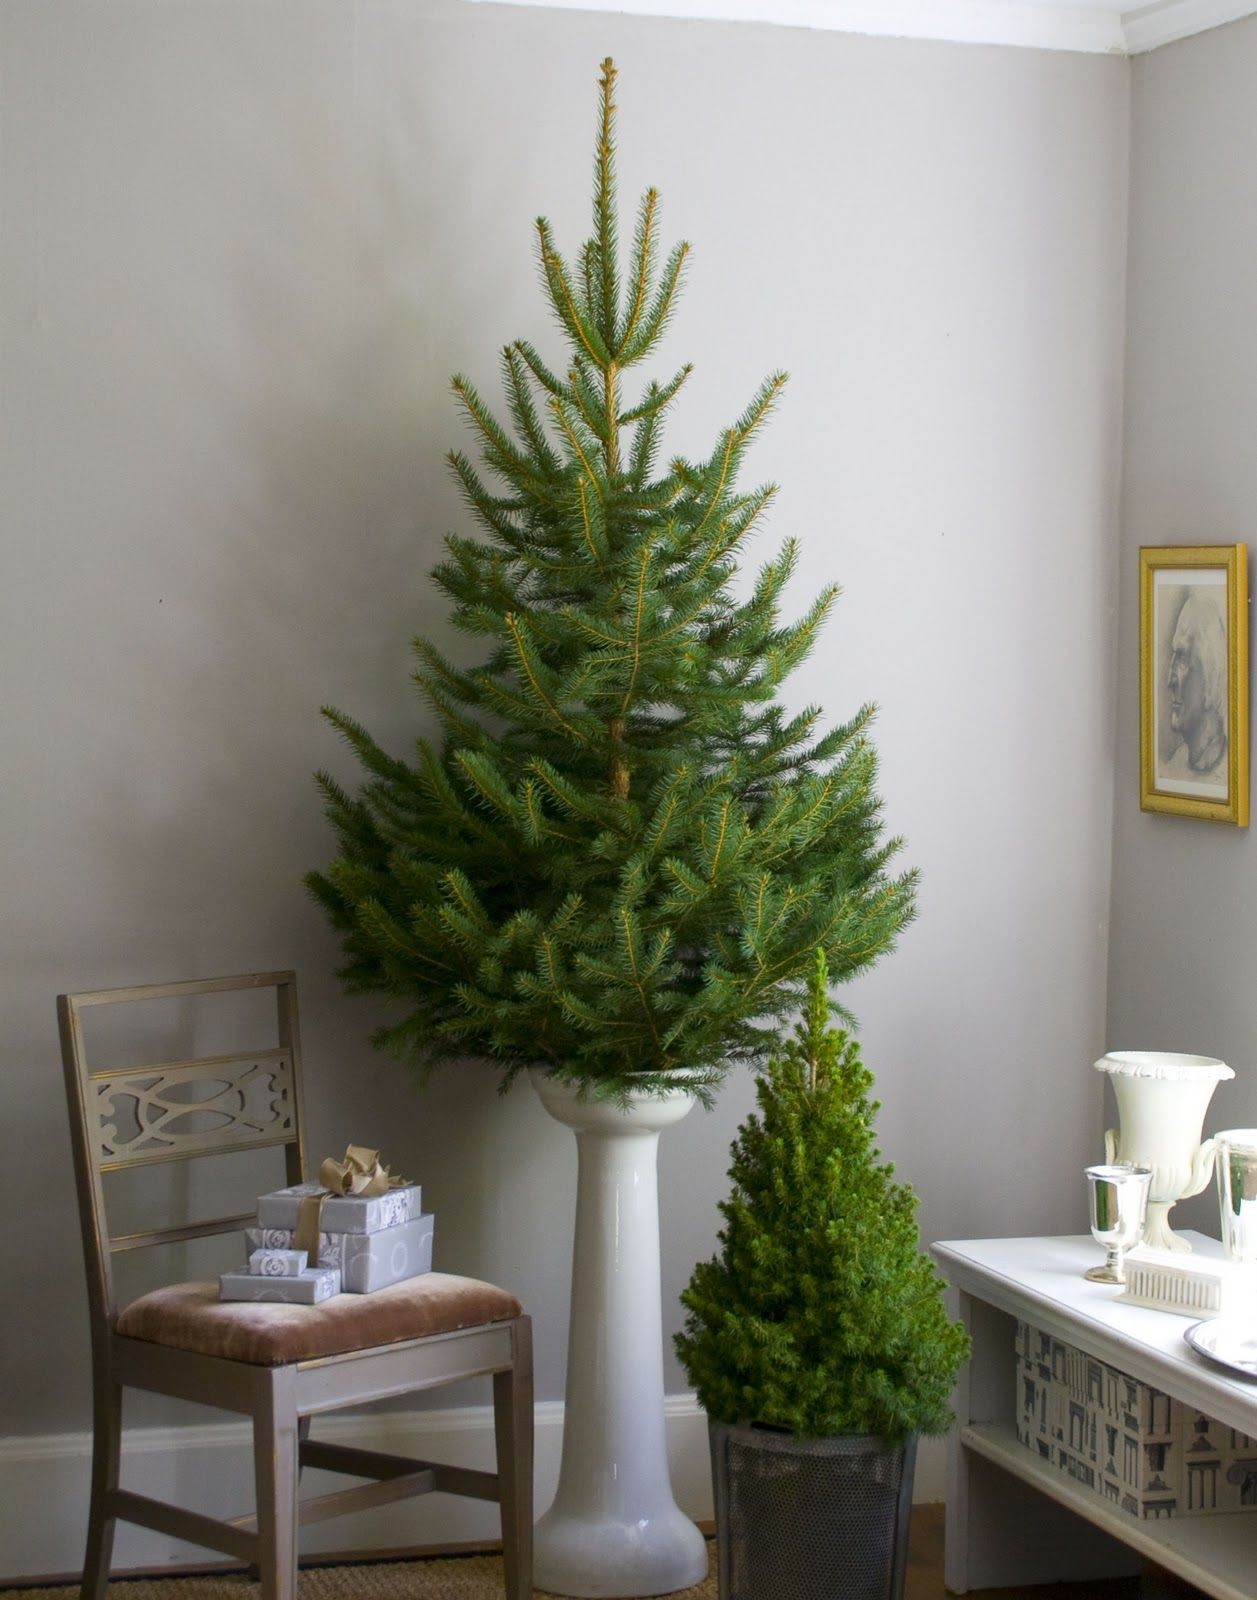 Christmas Tree Decor For Small Spaces- Love The Idea Of